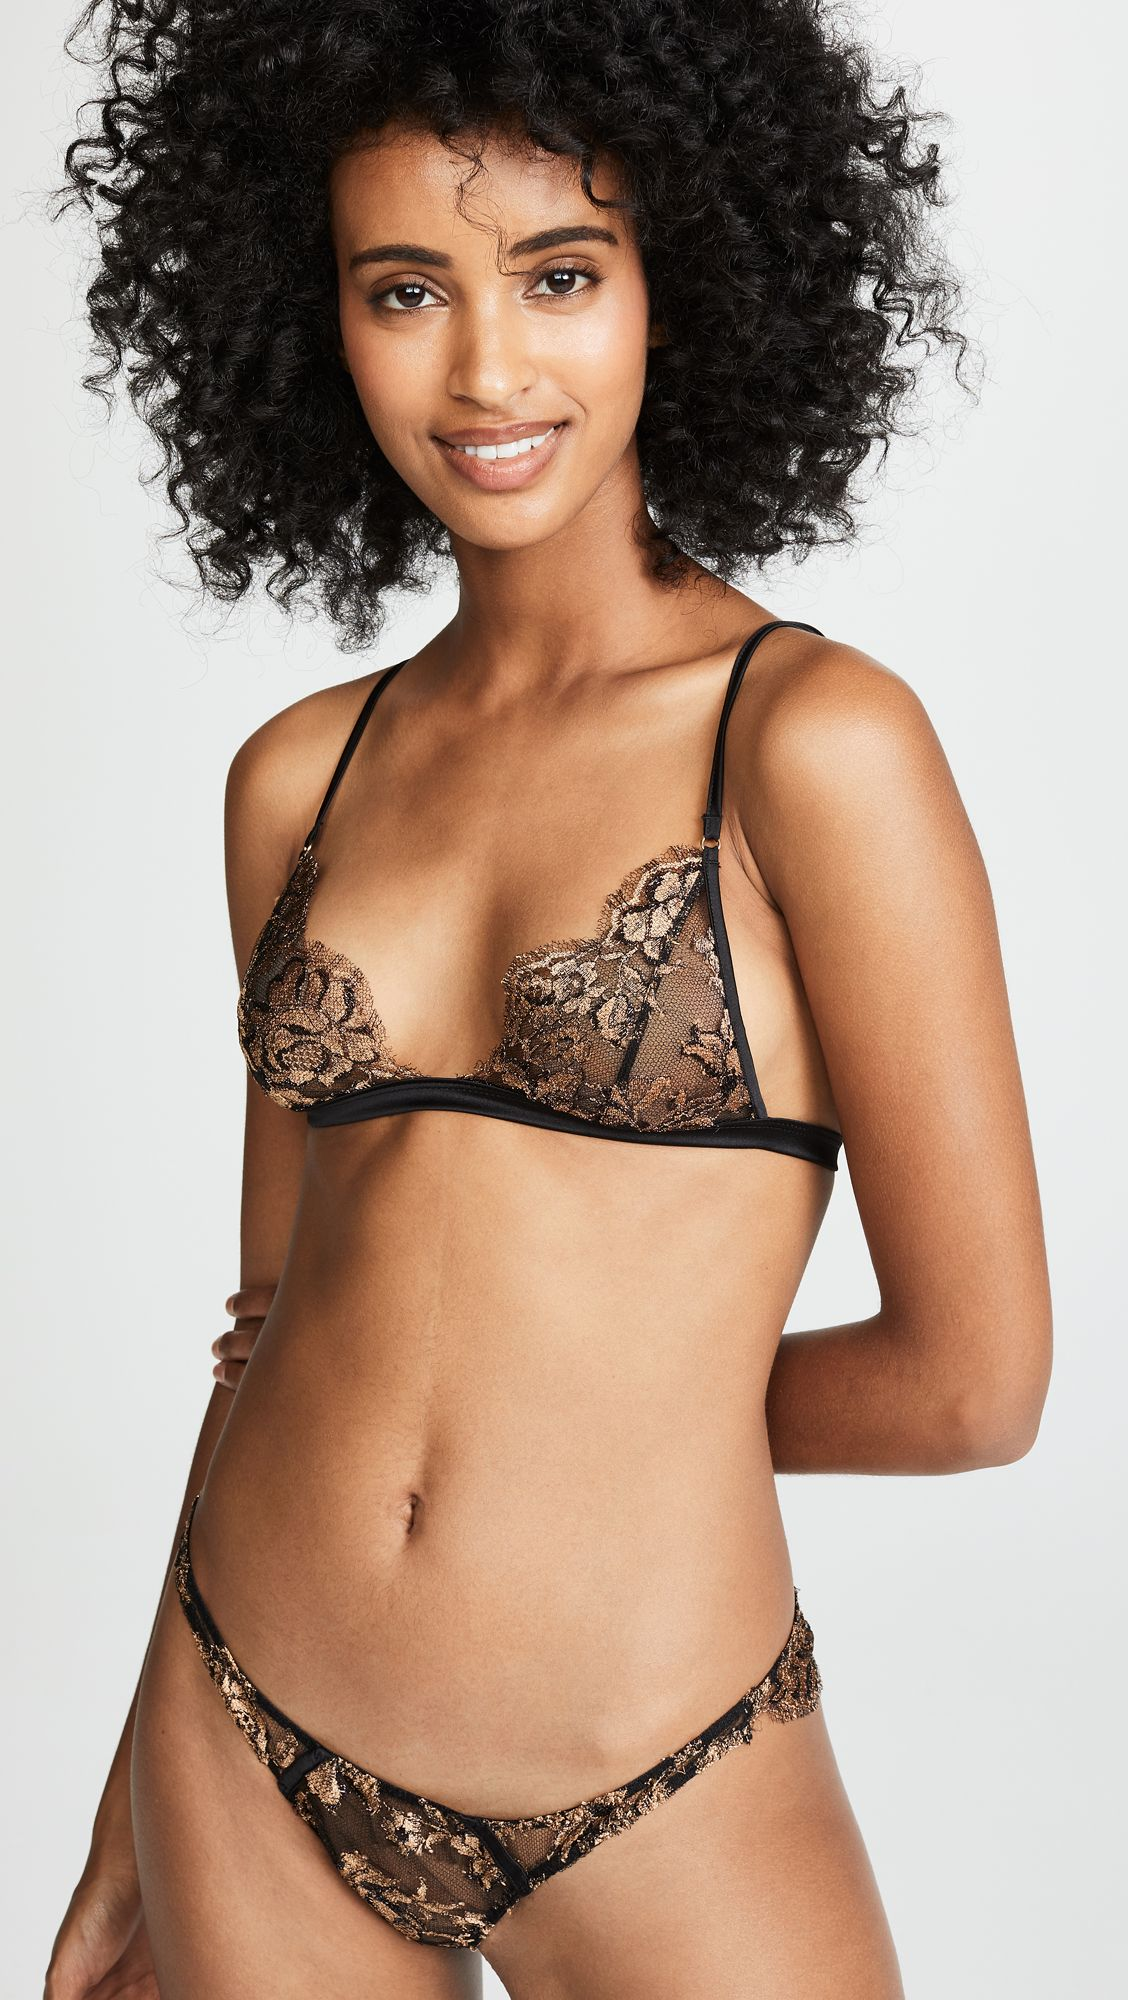 How This Lingerie Trend Weirdly Made Me Happier 17